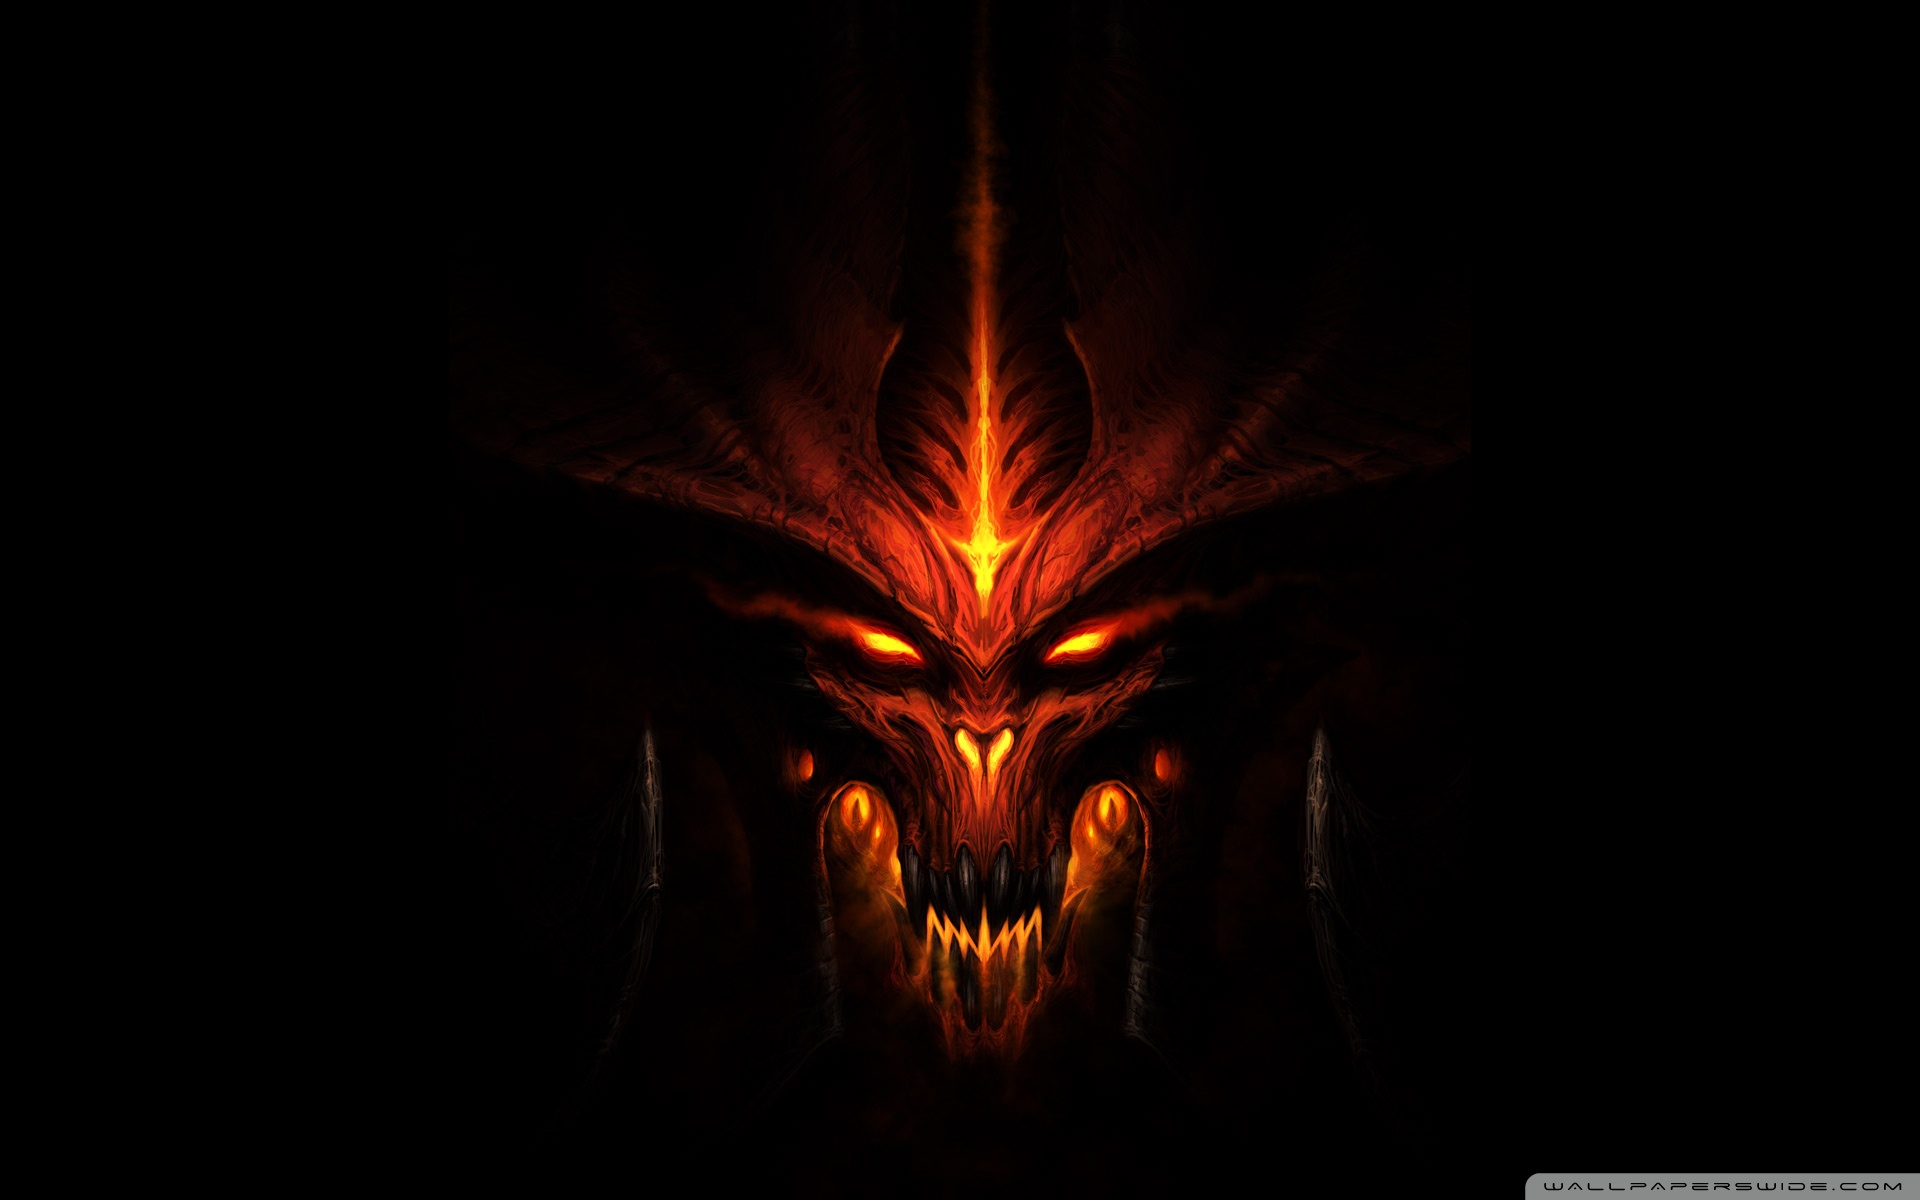 Diablo 3 Fiery HD Wide Wallpaper for Widescreen